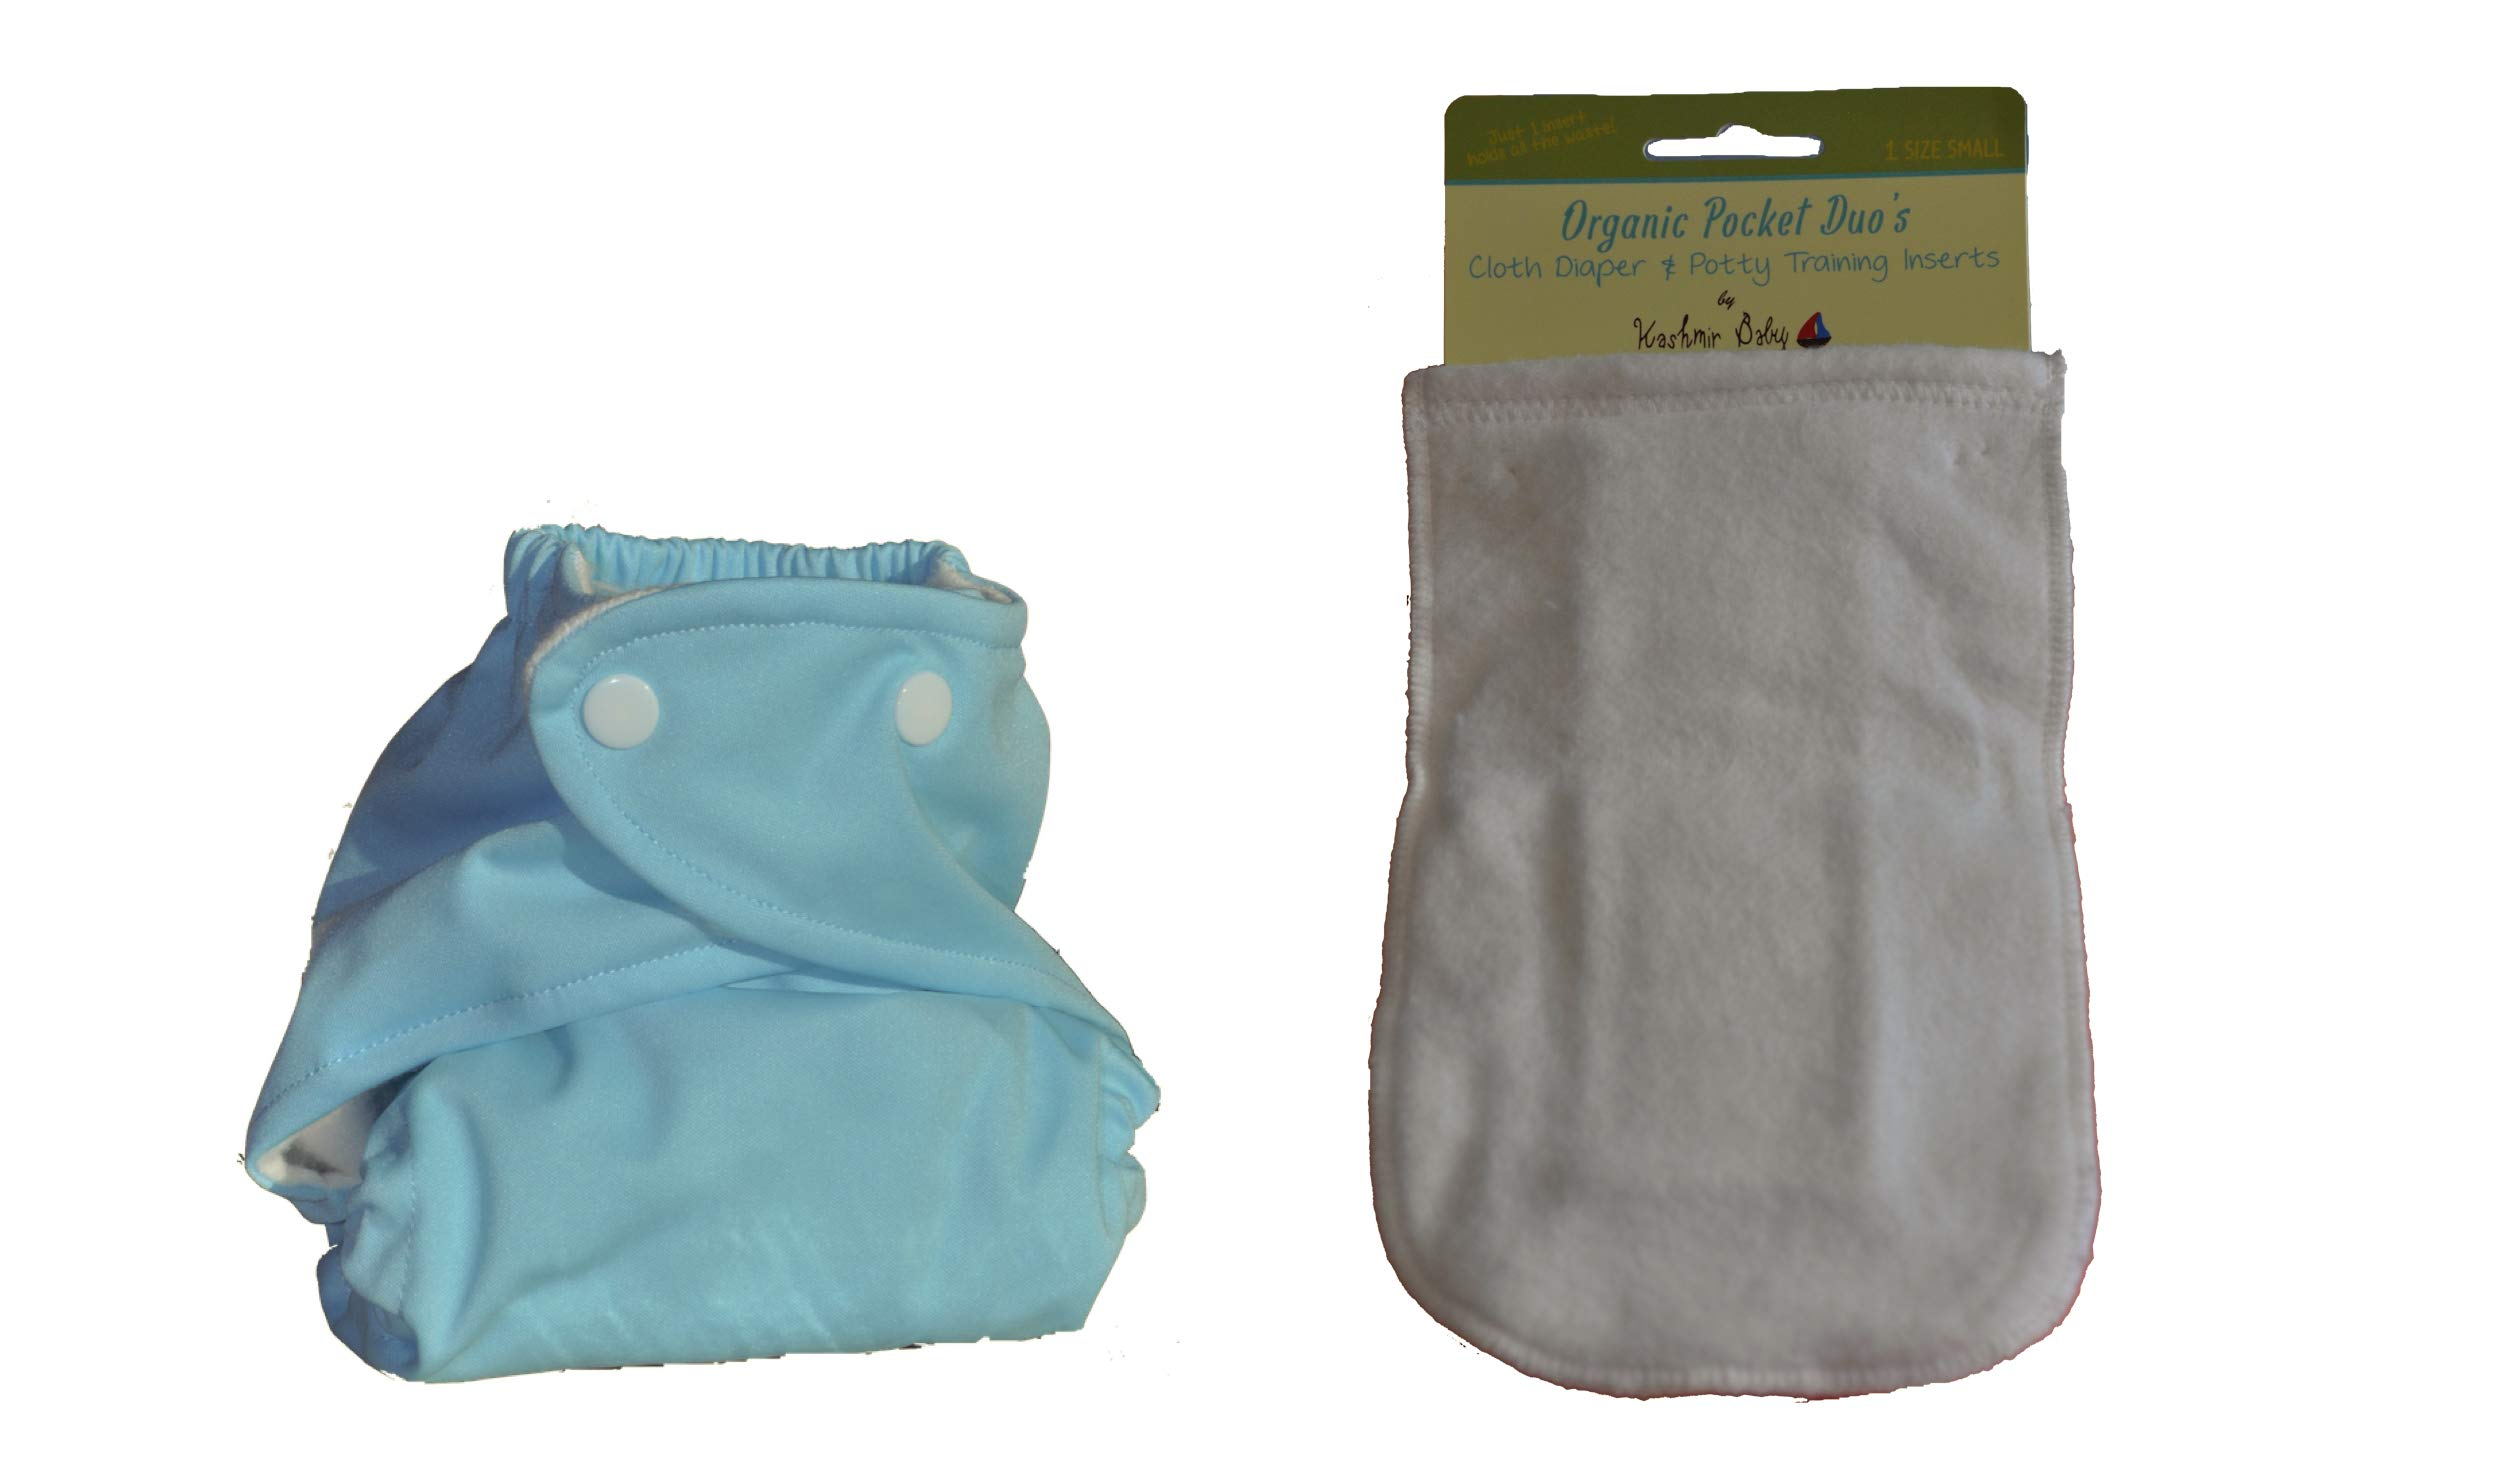 Kashmir Baby Bamboo/Organic One Size Diaper, Bamboo Insert (Baby Blue Snap) by Kashmir Baby